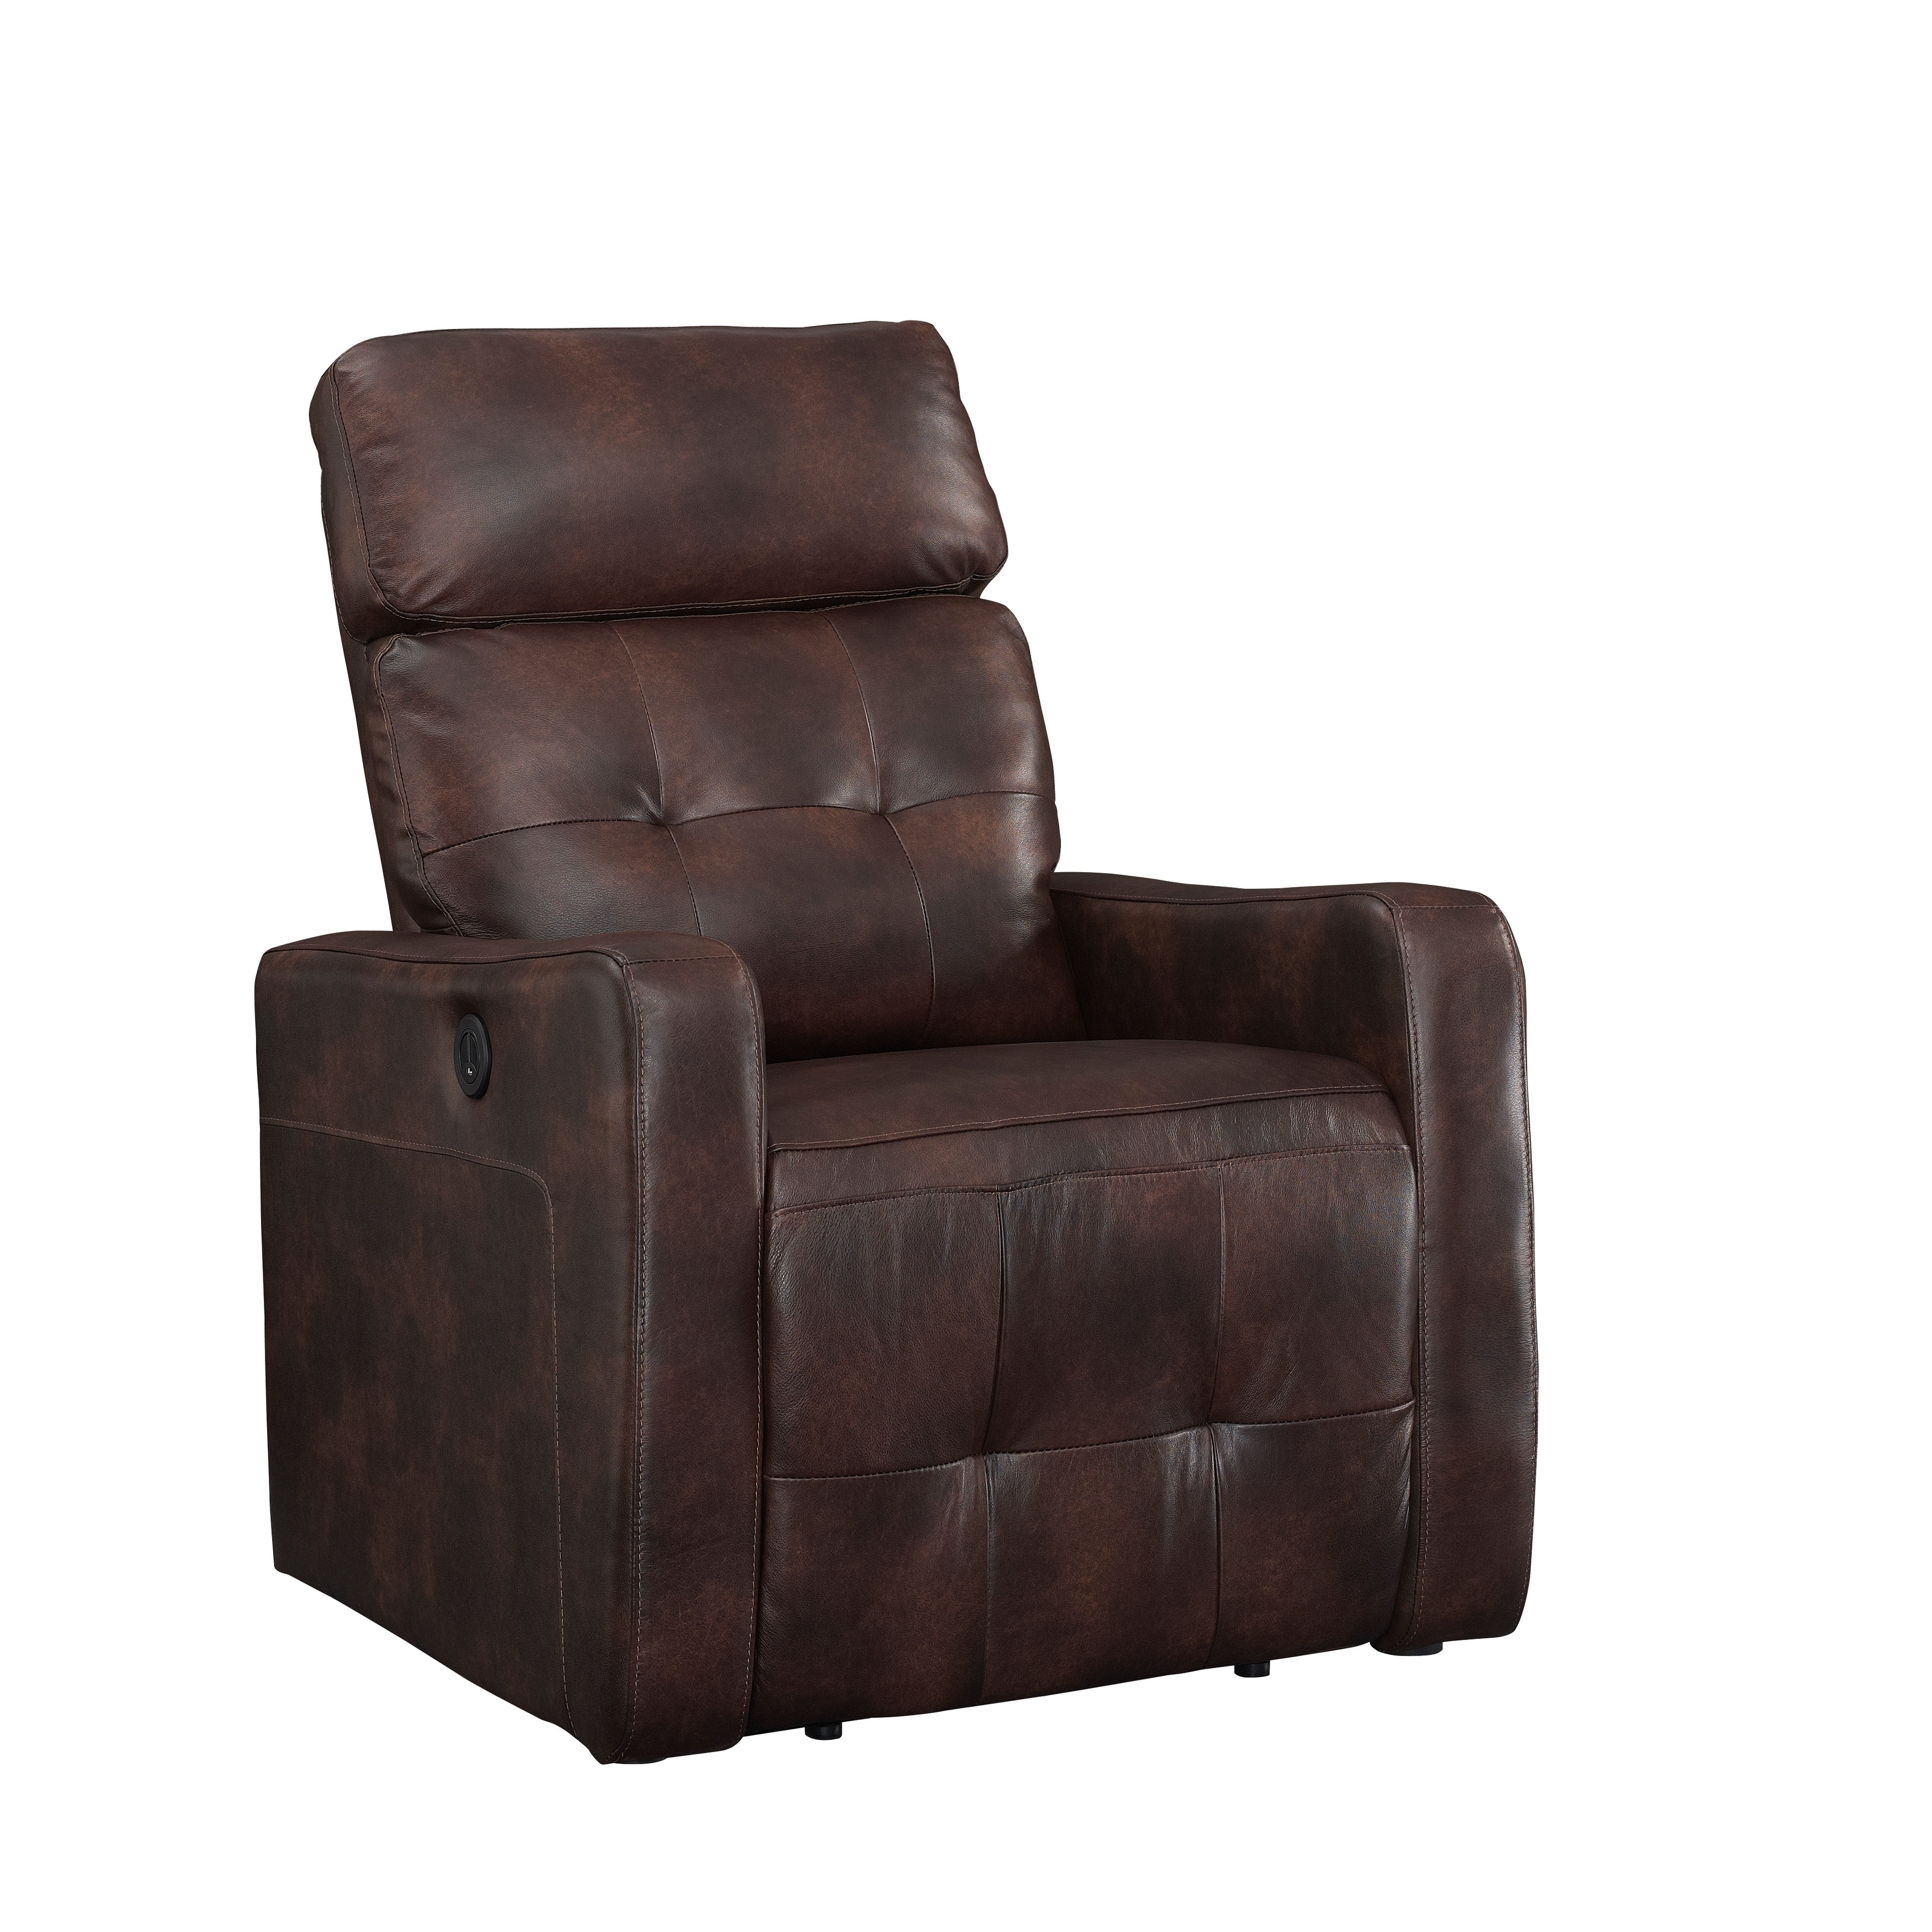 Electric Recliner Leather Chairs Details About Ac Pacific Elsa Contemporary Living Room Power Recliner Leather Chair